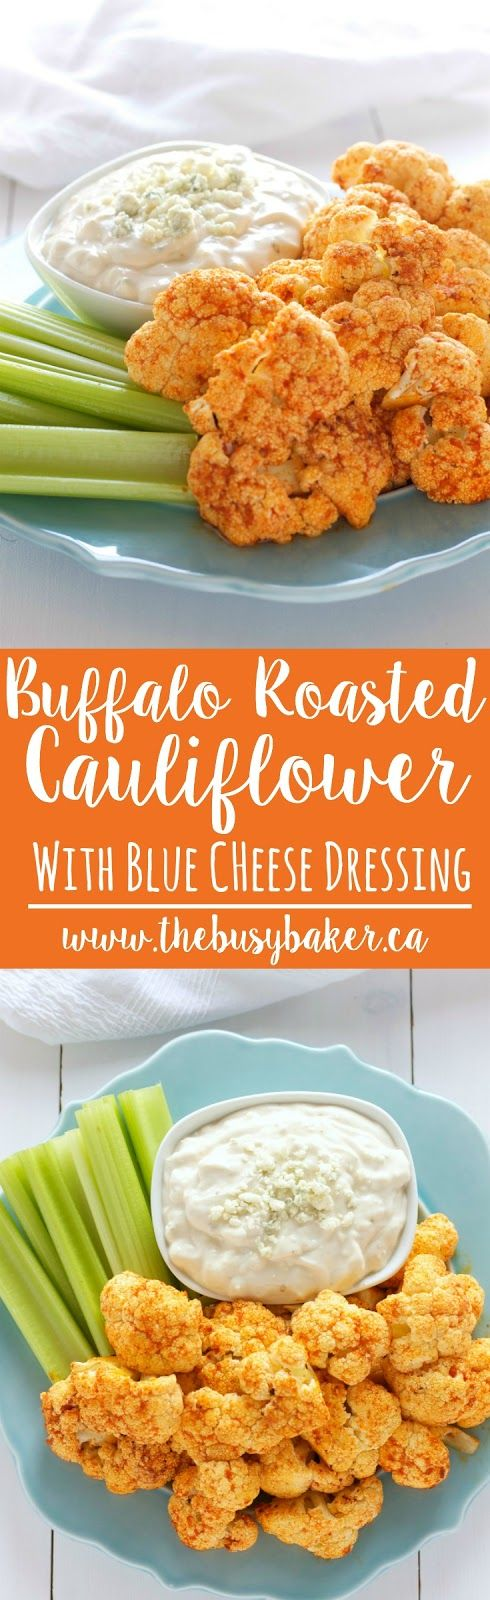 Buffalo Roasted Cauliflower with Blue Cheese Dipping Sauce makes the perfect summer snack! www.thebusybaker.ca